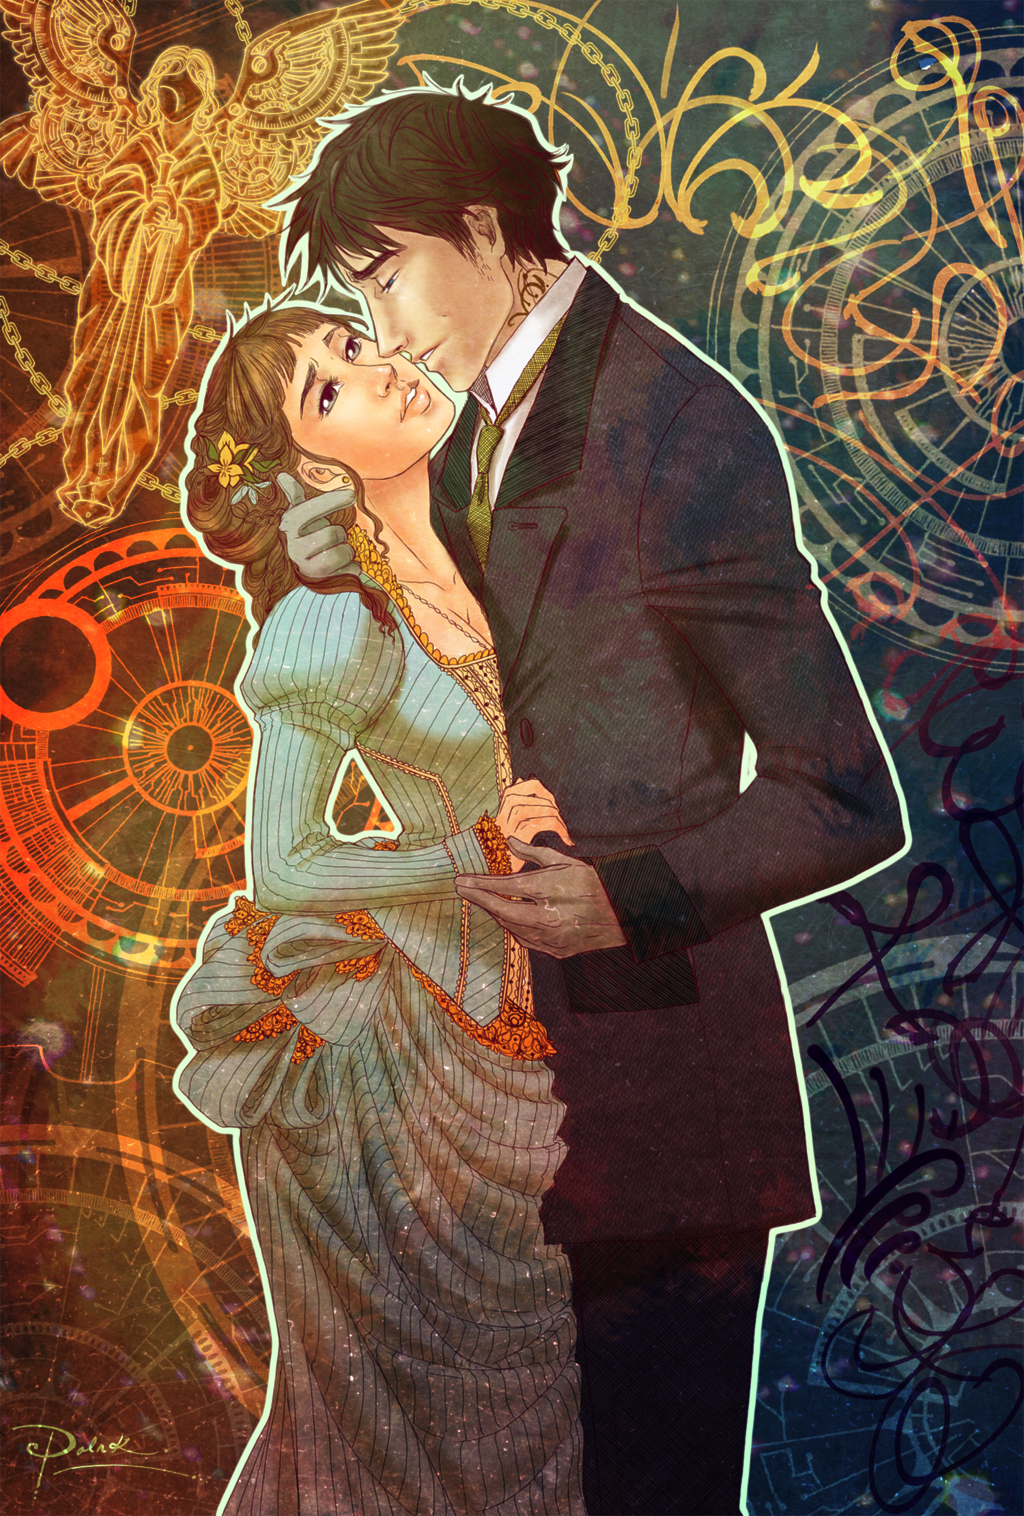 Tessa and Will by palnk on DeviantArt